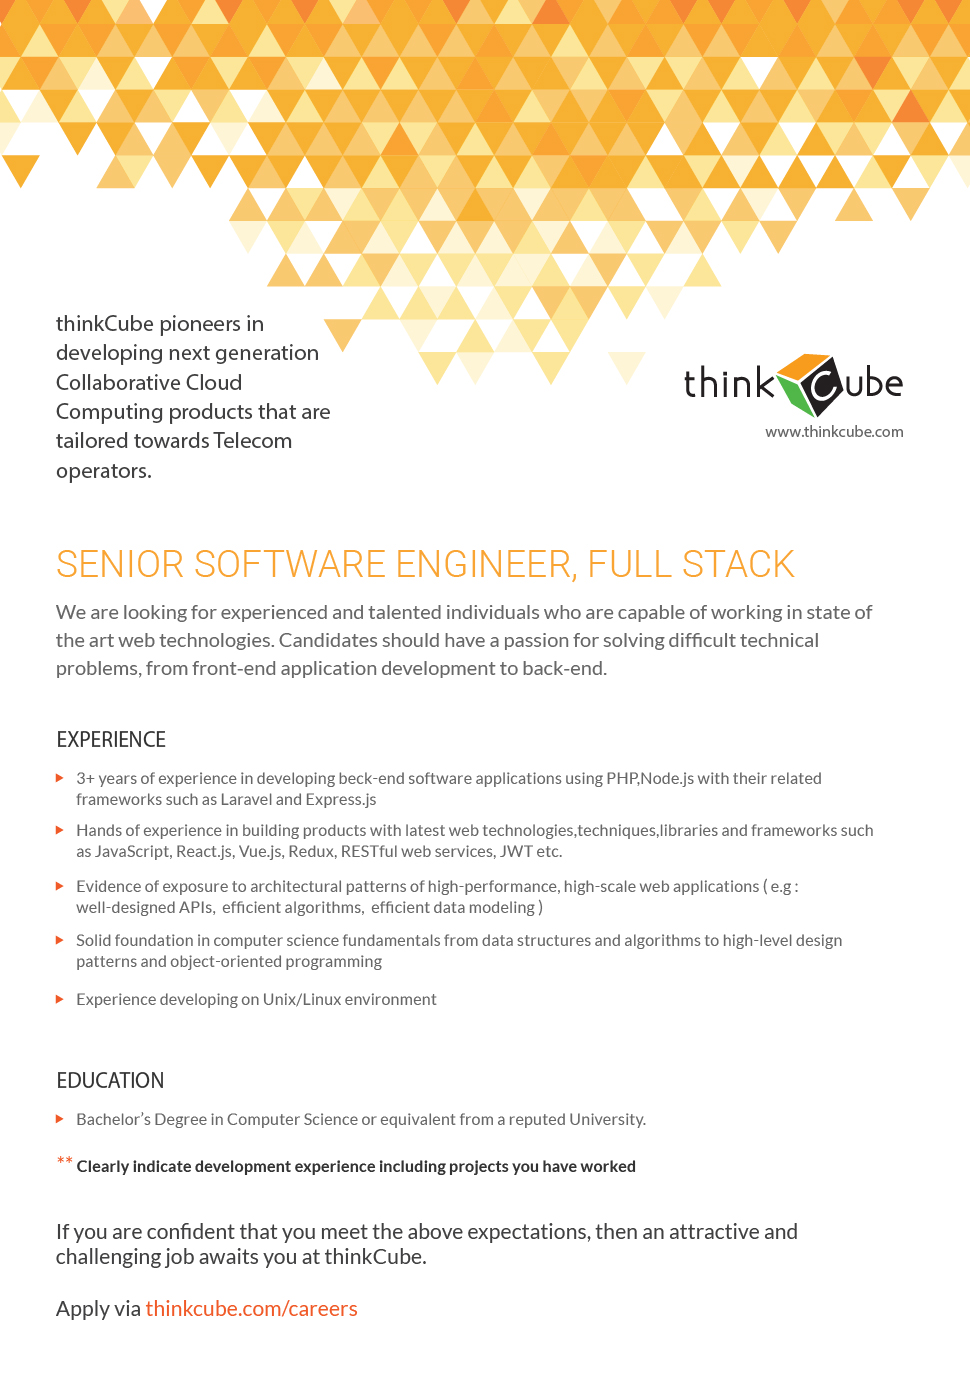 SENIOR SOFTWARE ENGINEER-FULLSTACK